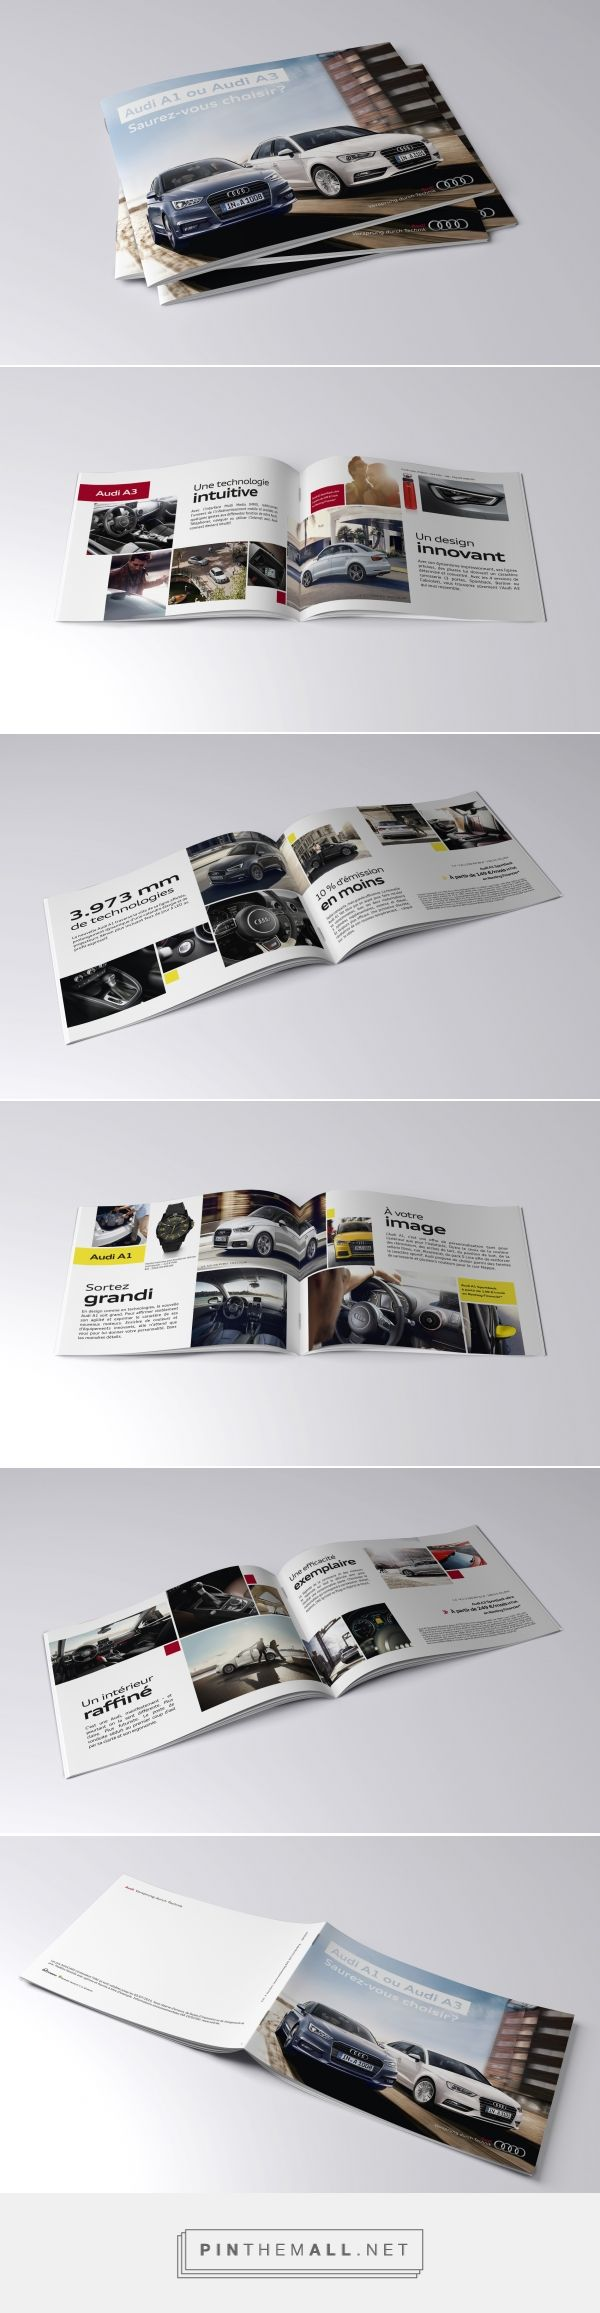 Brochure // Audi | Pauline Gueuning, Graphic designer http://enylua.webaction.be